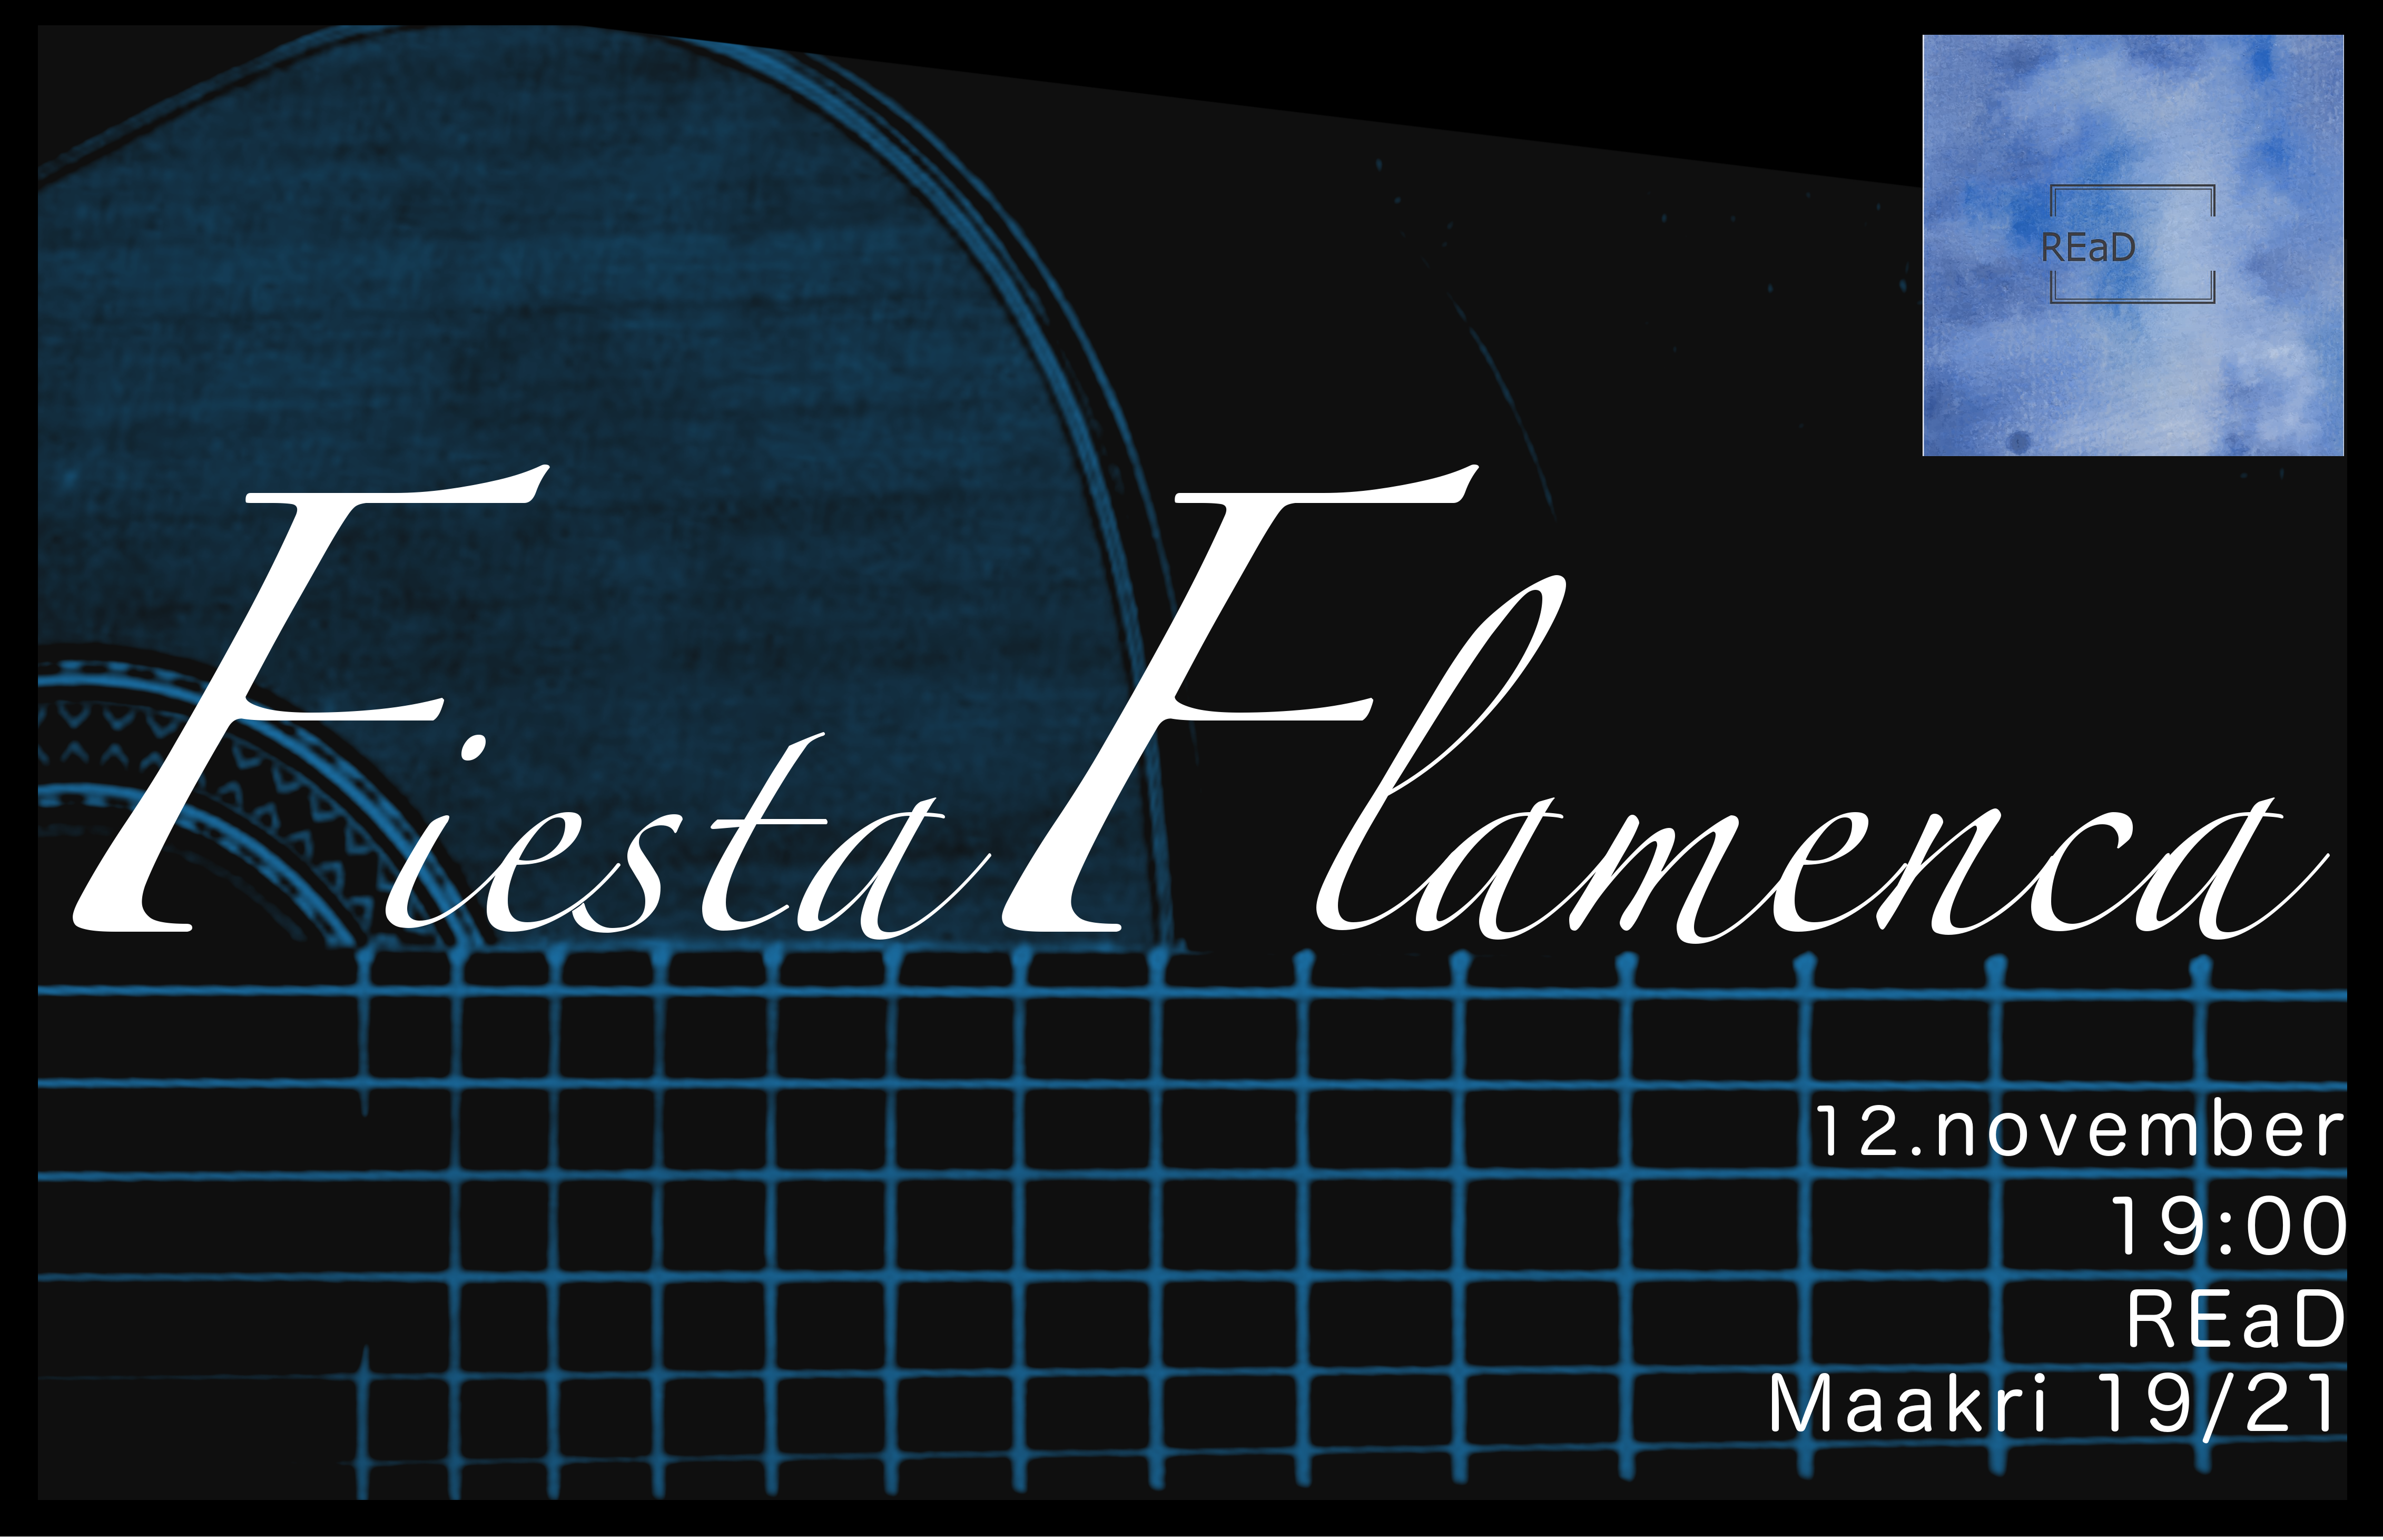 20161112 Cartel Flamenco Fiesta REaD 12n